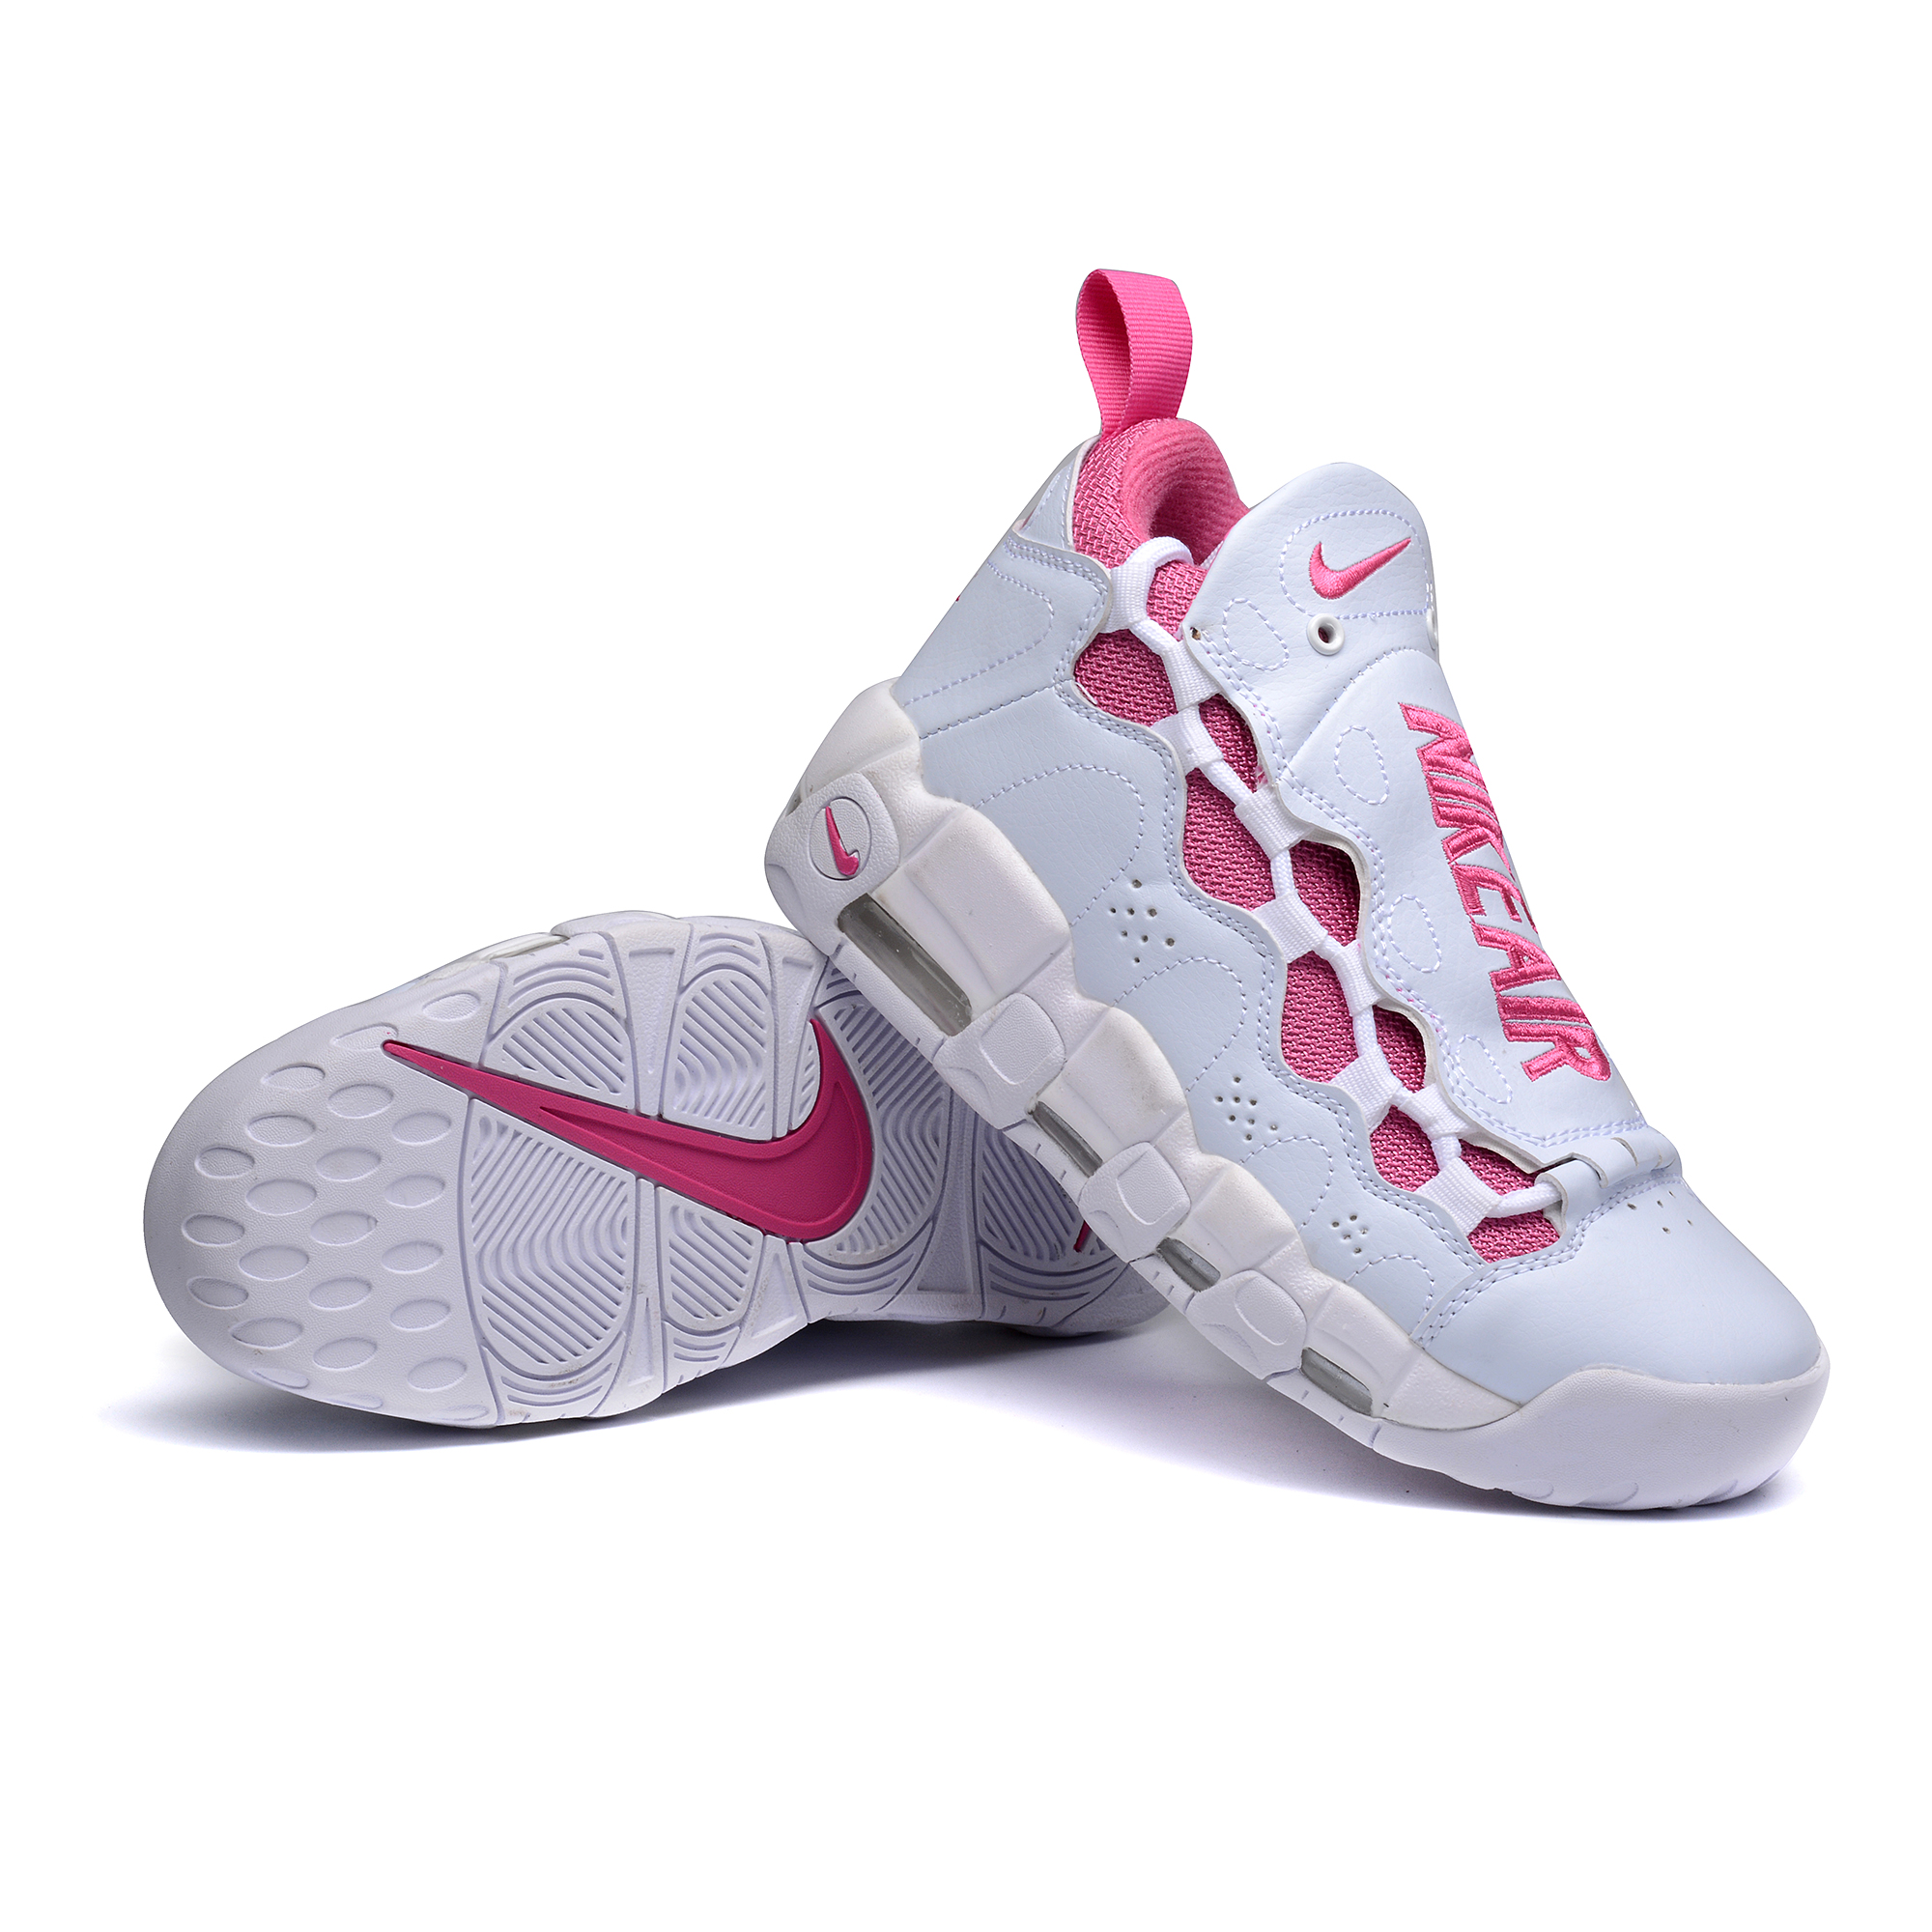 Nike Air More Money QS Breast Cancer White Pink Shoes